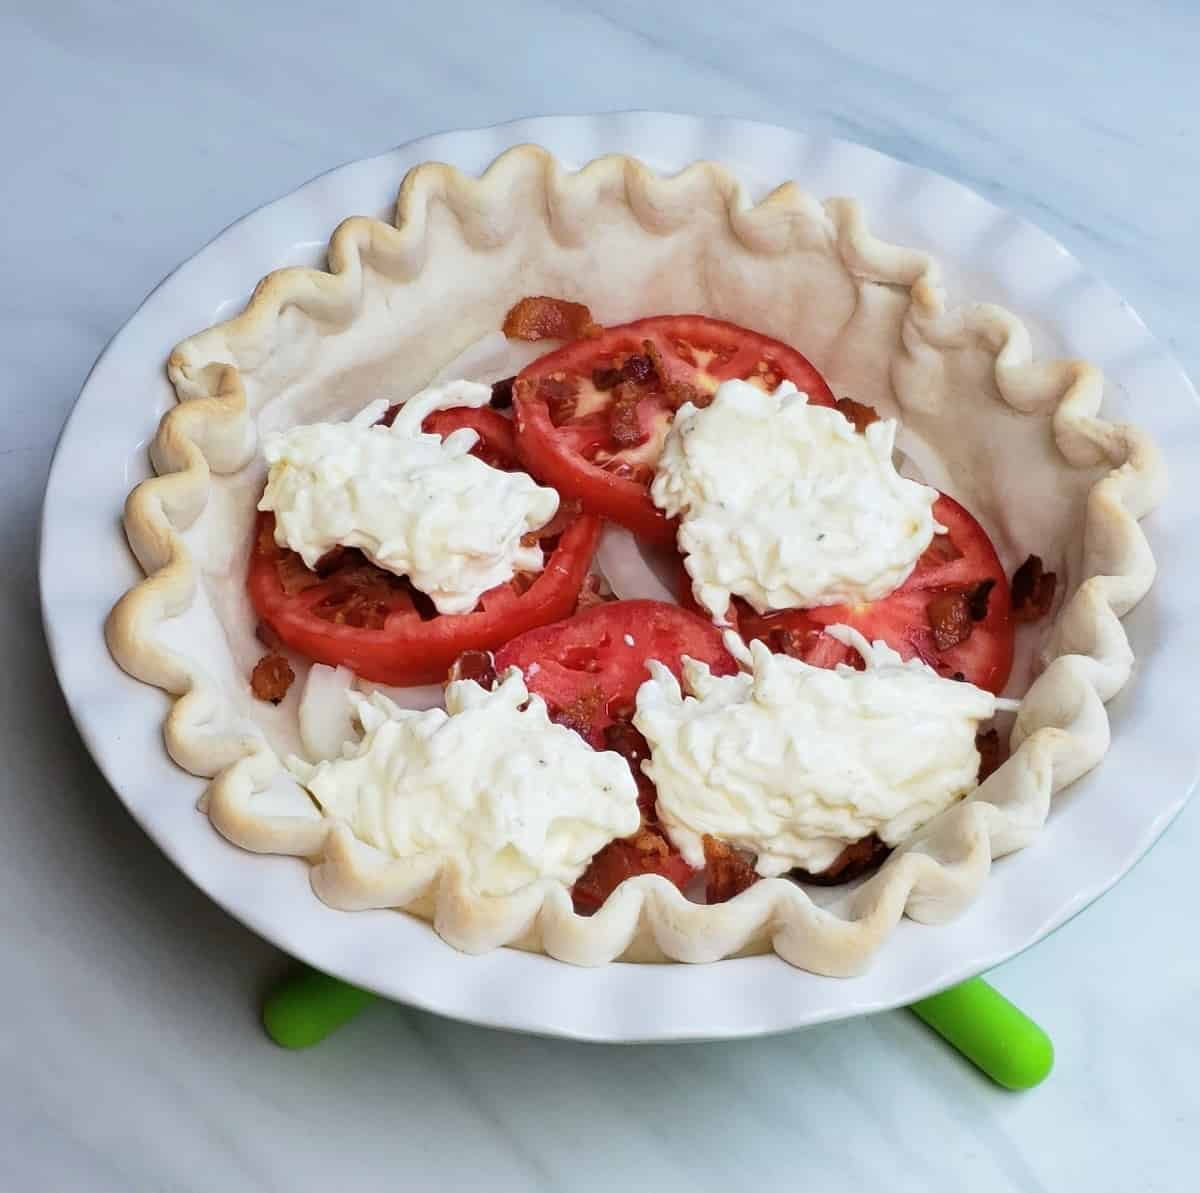 sliced tomatoes, cheese filling layered in a prebaked pie crust sitting on green silicone trivets